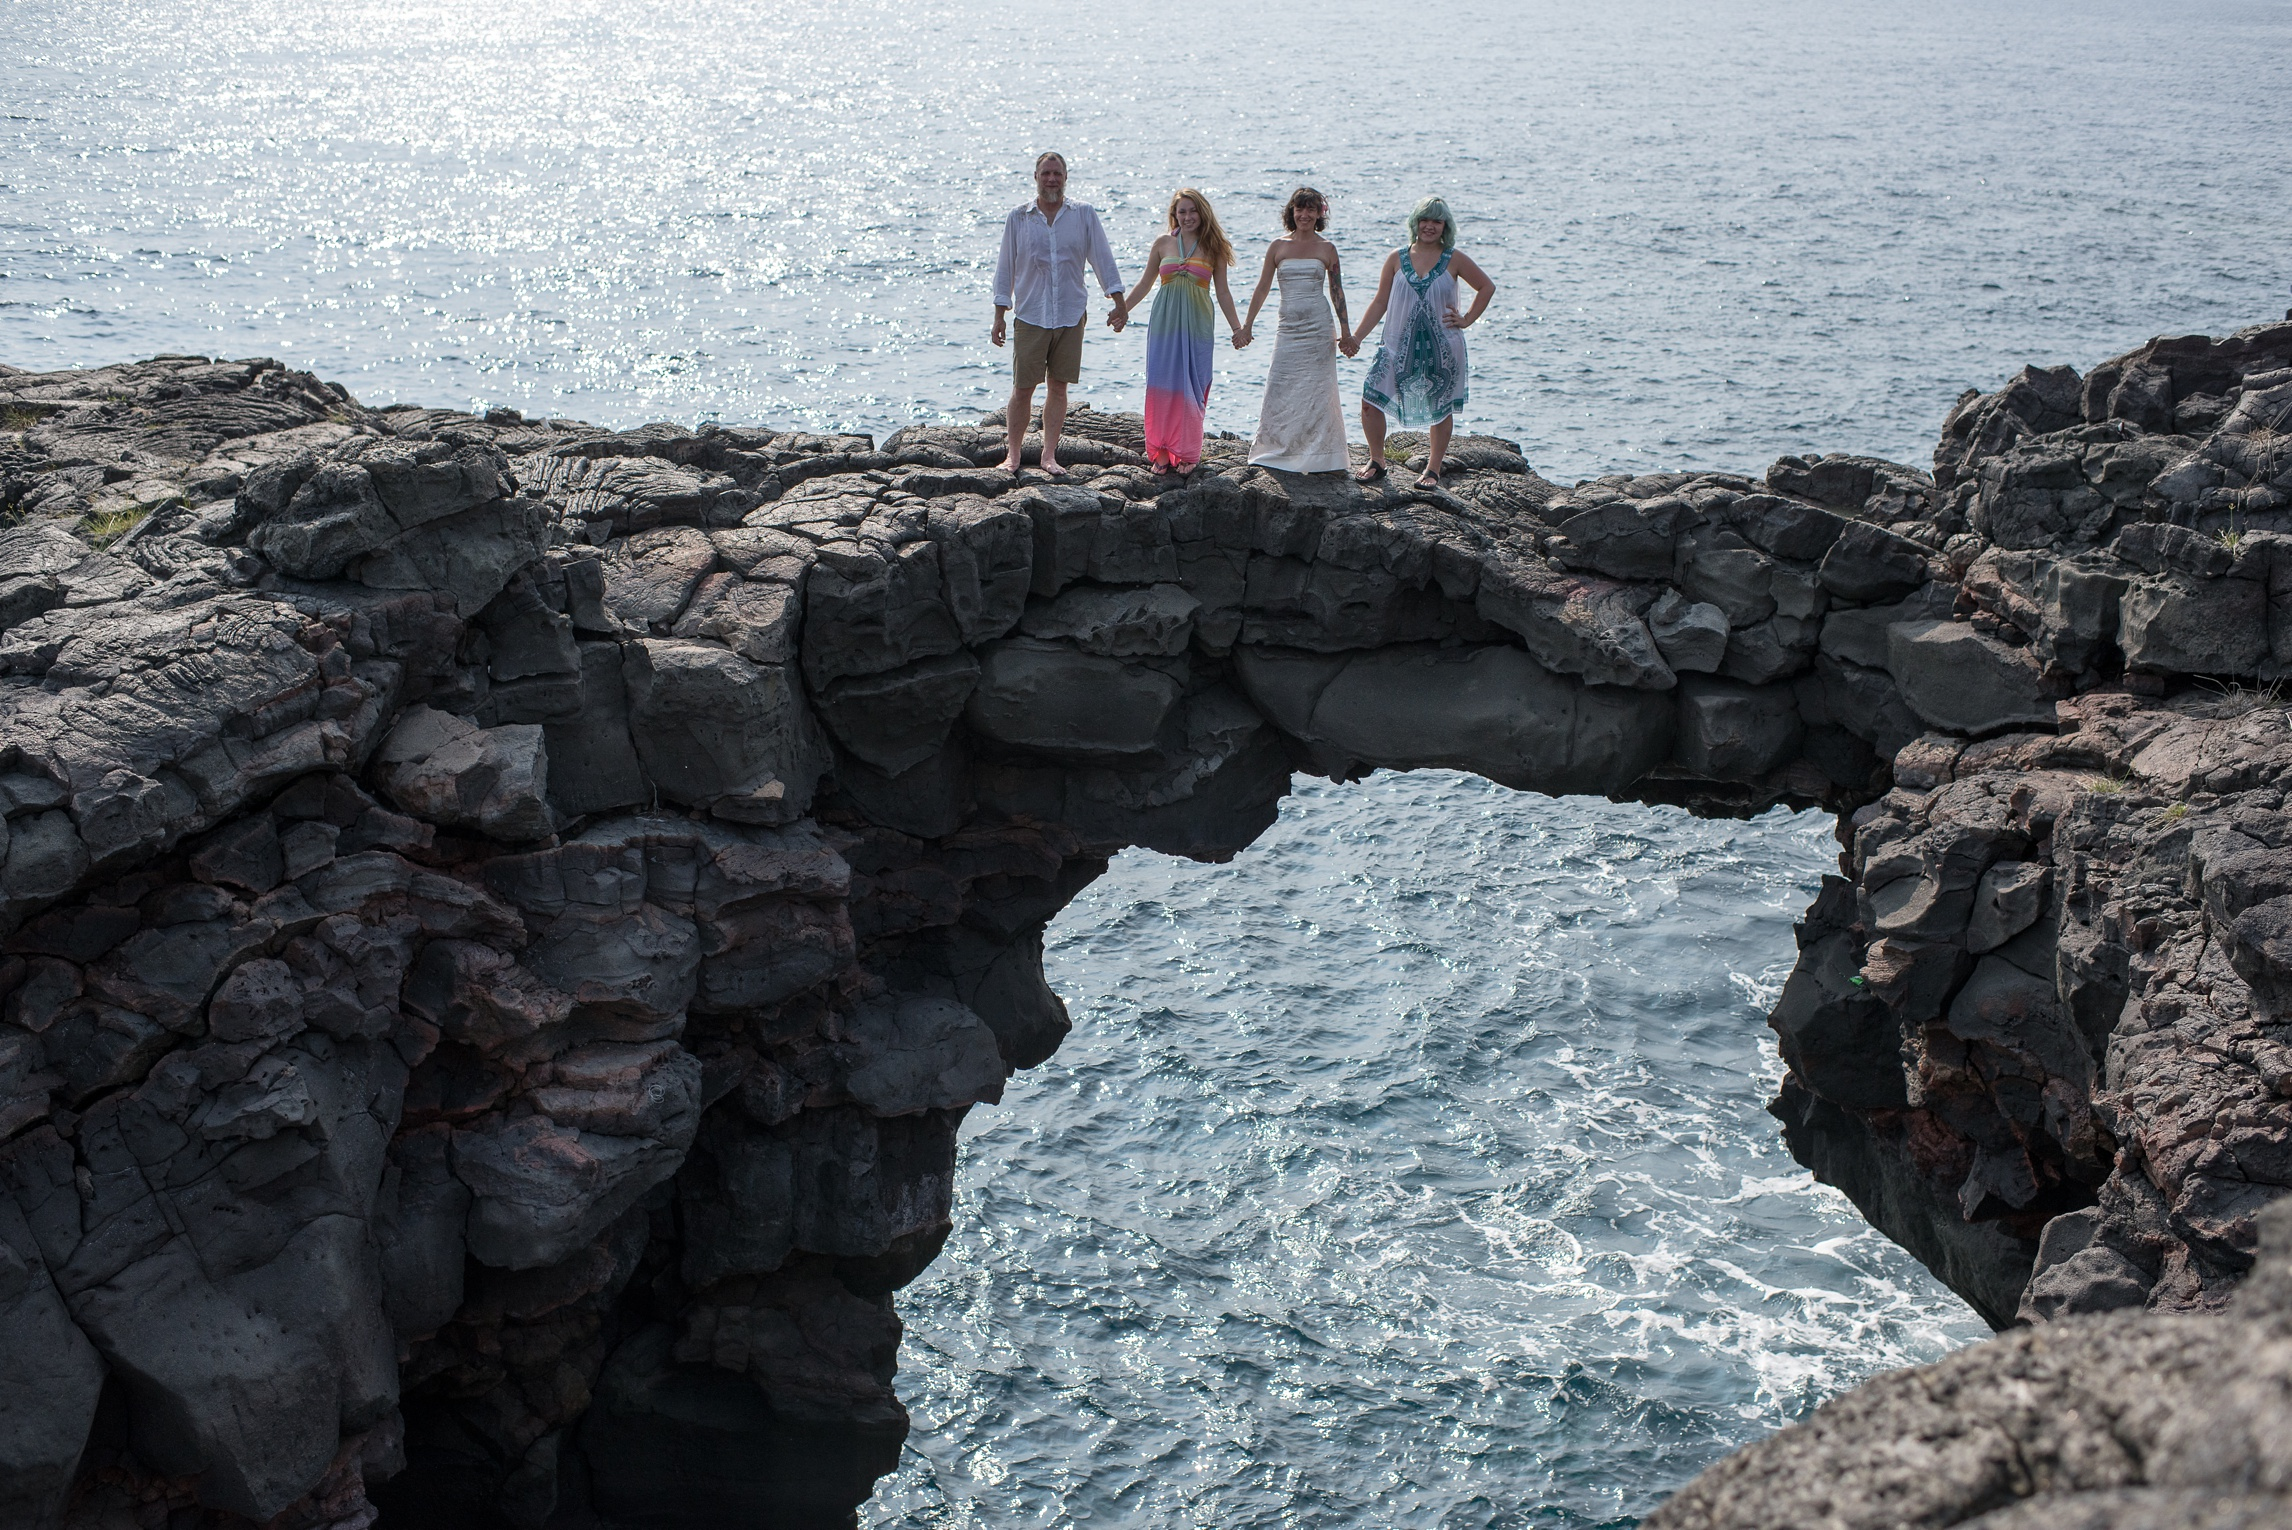 The family on top of a sea arch near Naalehu, Hawaii. Anniversary portrait photography by Sonja Salzburg of Sonja K Photography.